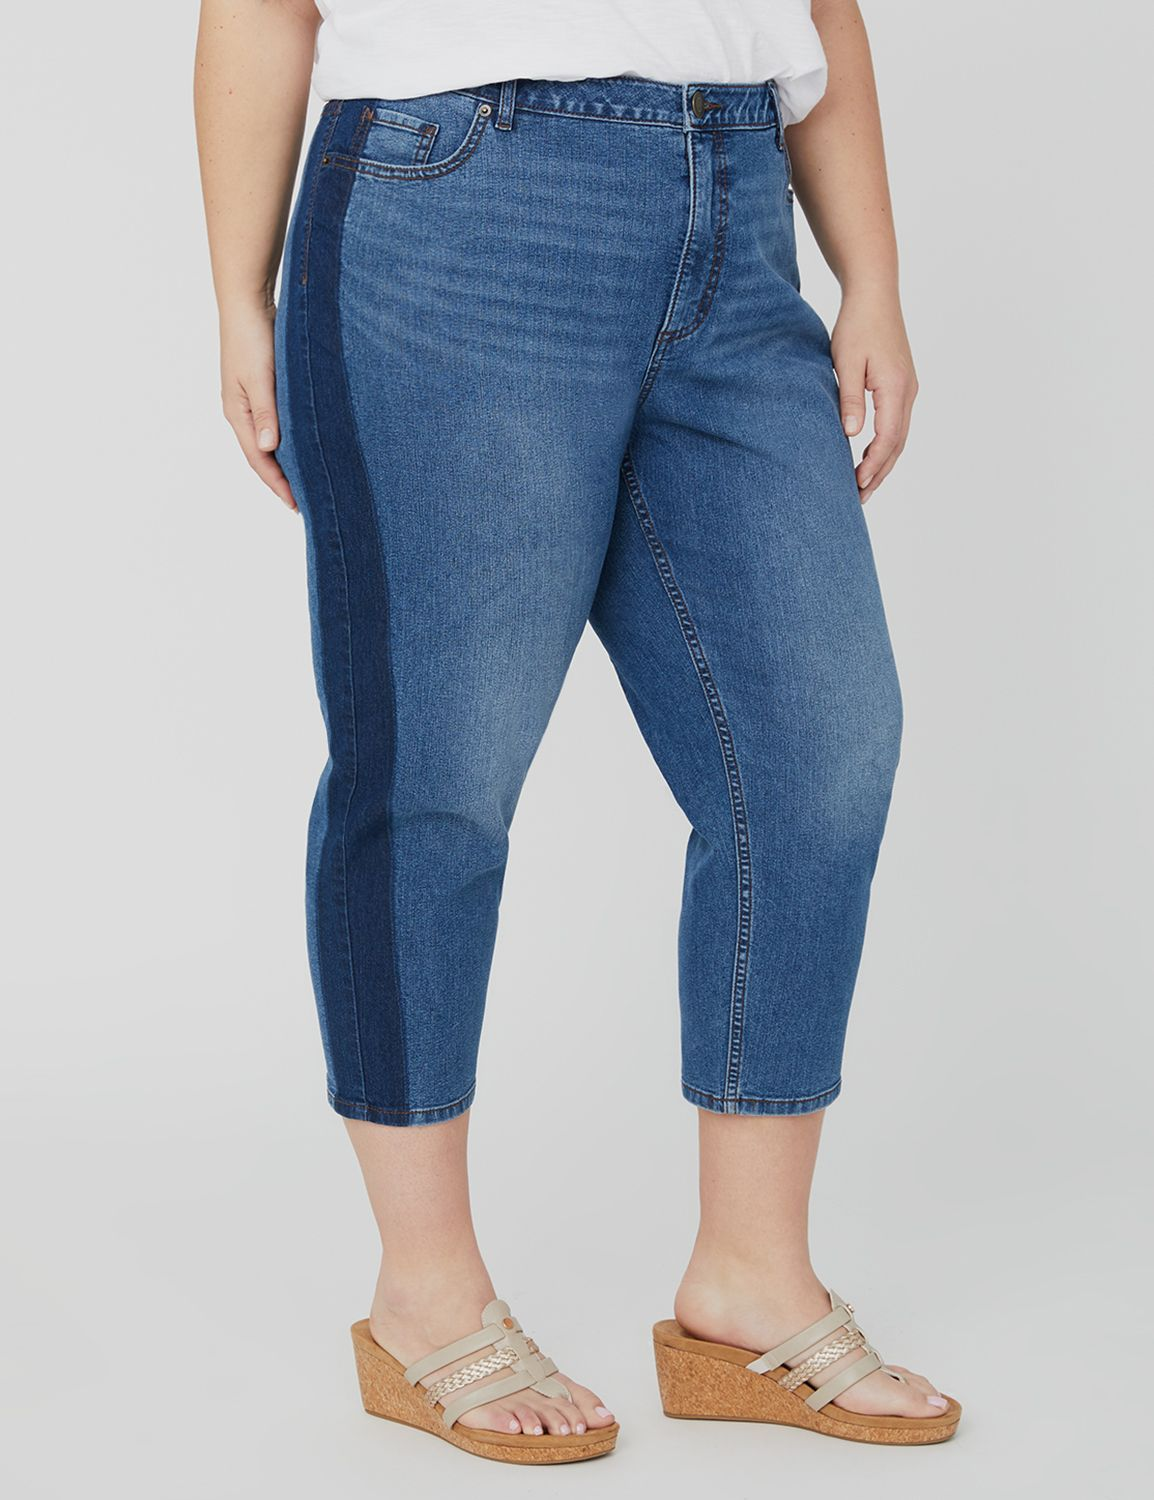 Jean Capri with Dark-Wash Stripe 1088046 2-TONE DENIM WASH ON SIDE S MP-300099569